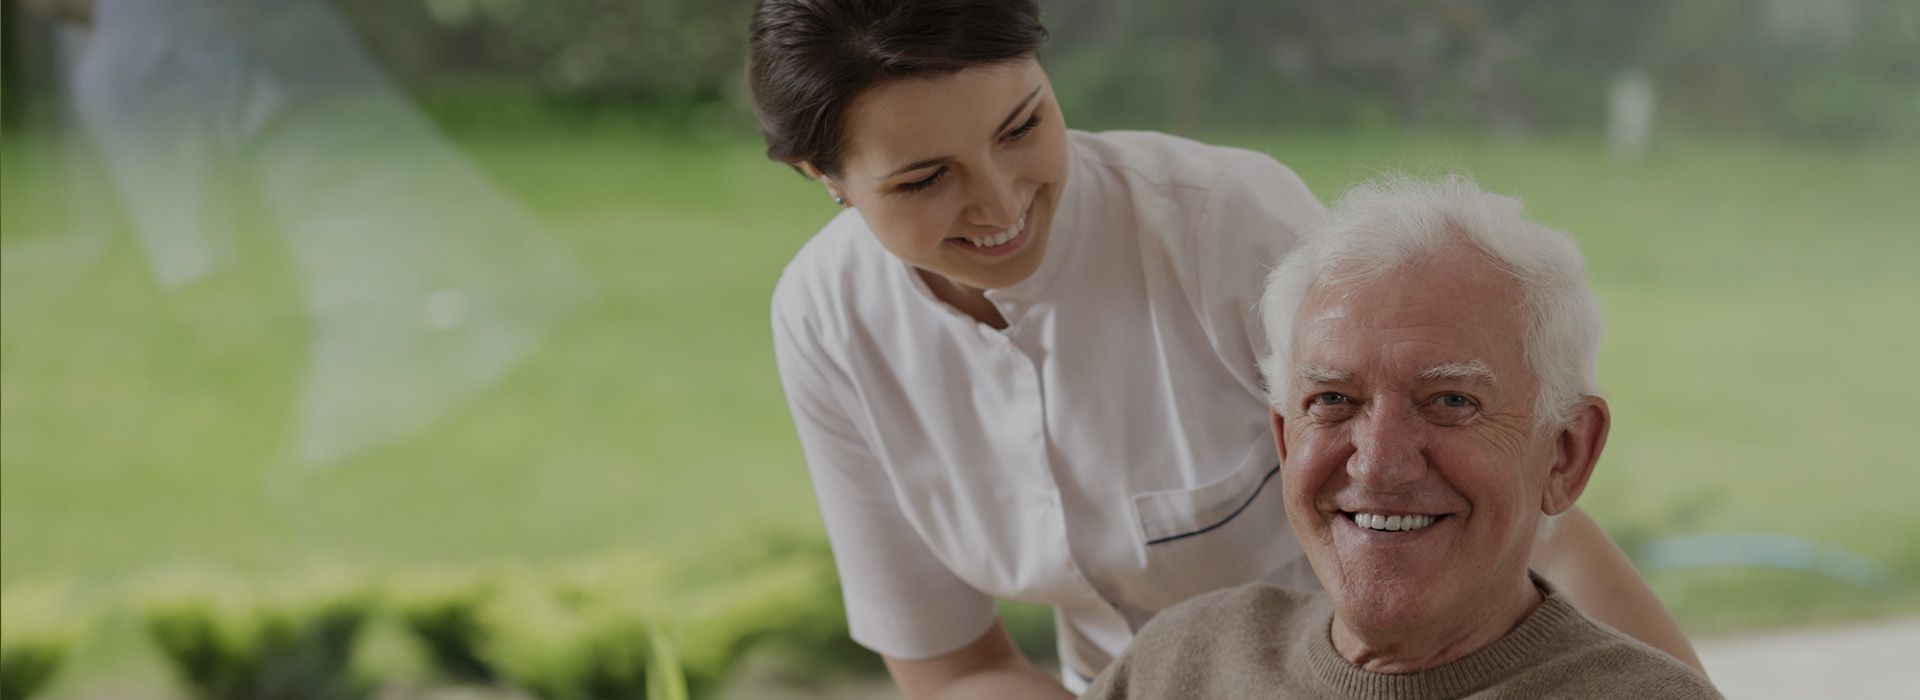 Loving-caregiver-with-an-elderly-man-at-his-home